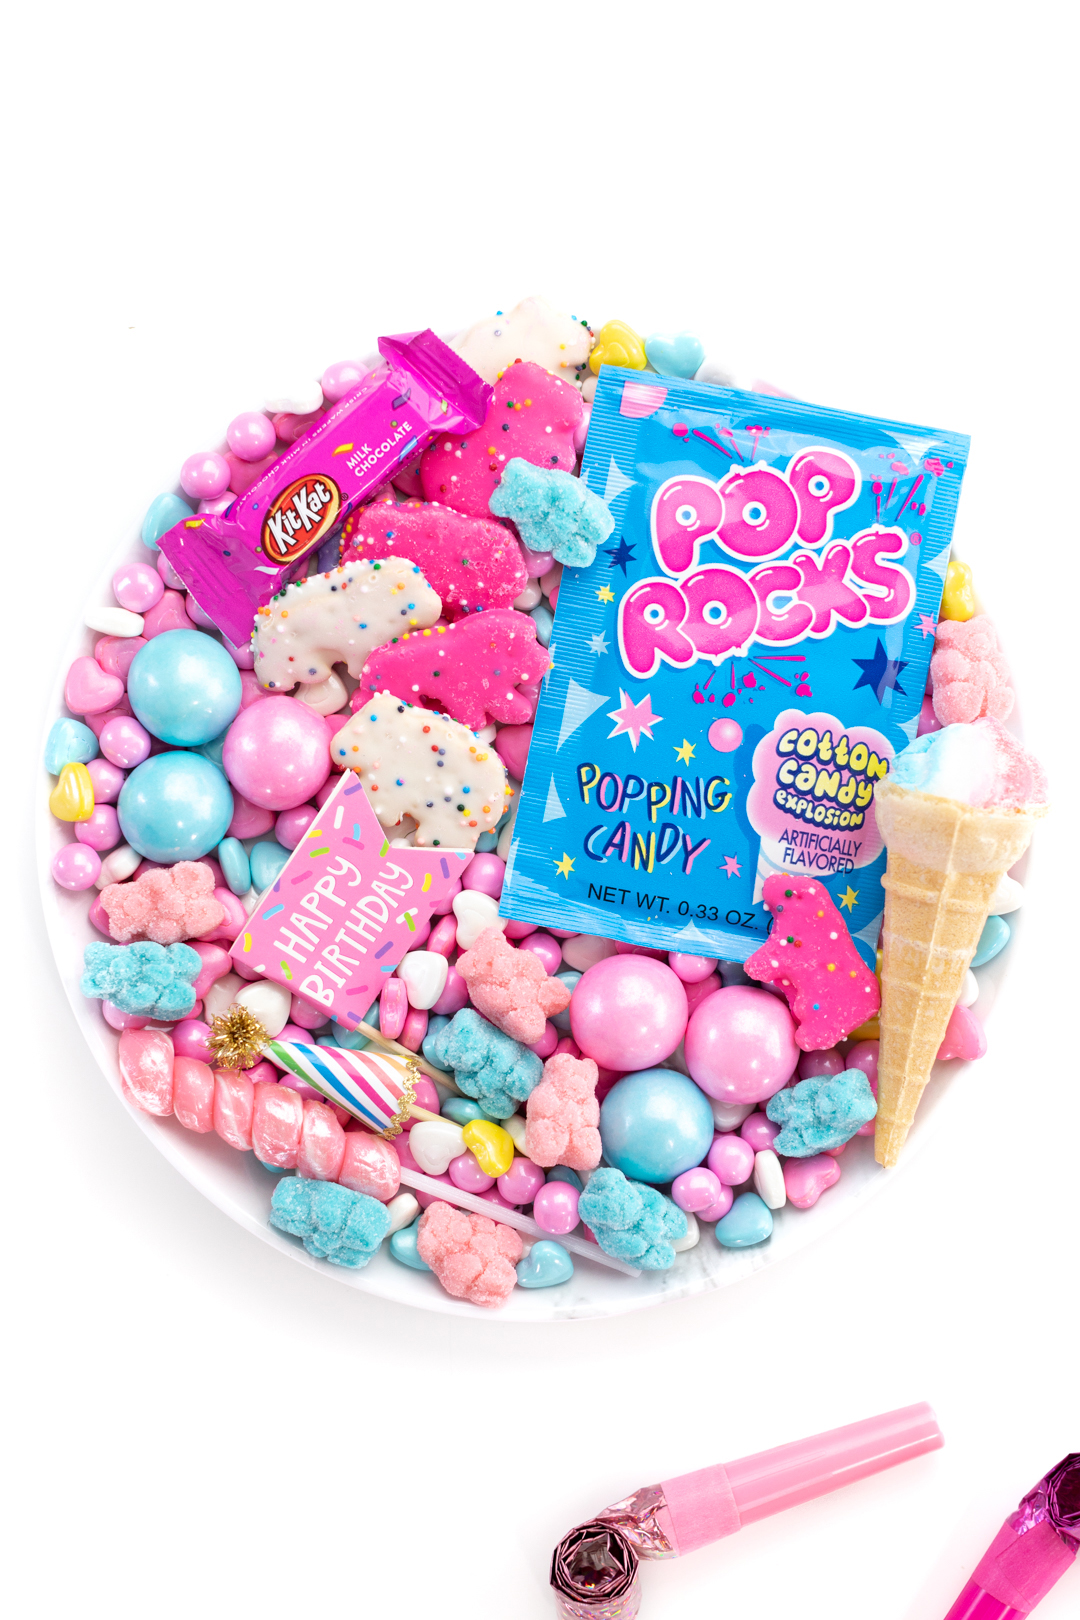 trendy candy board for one person filled with fun happy candy